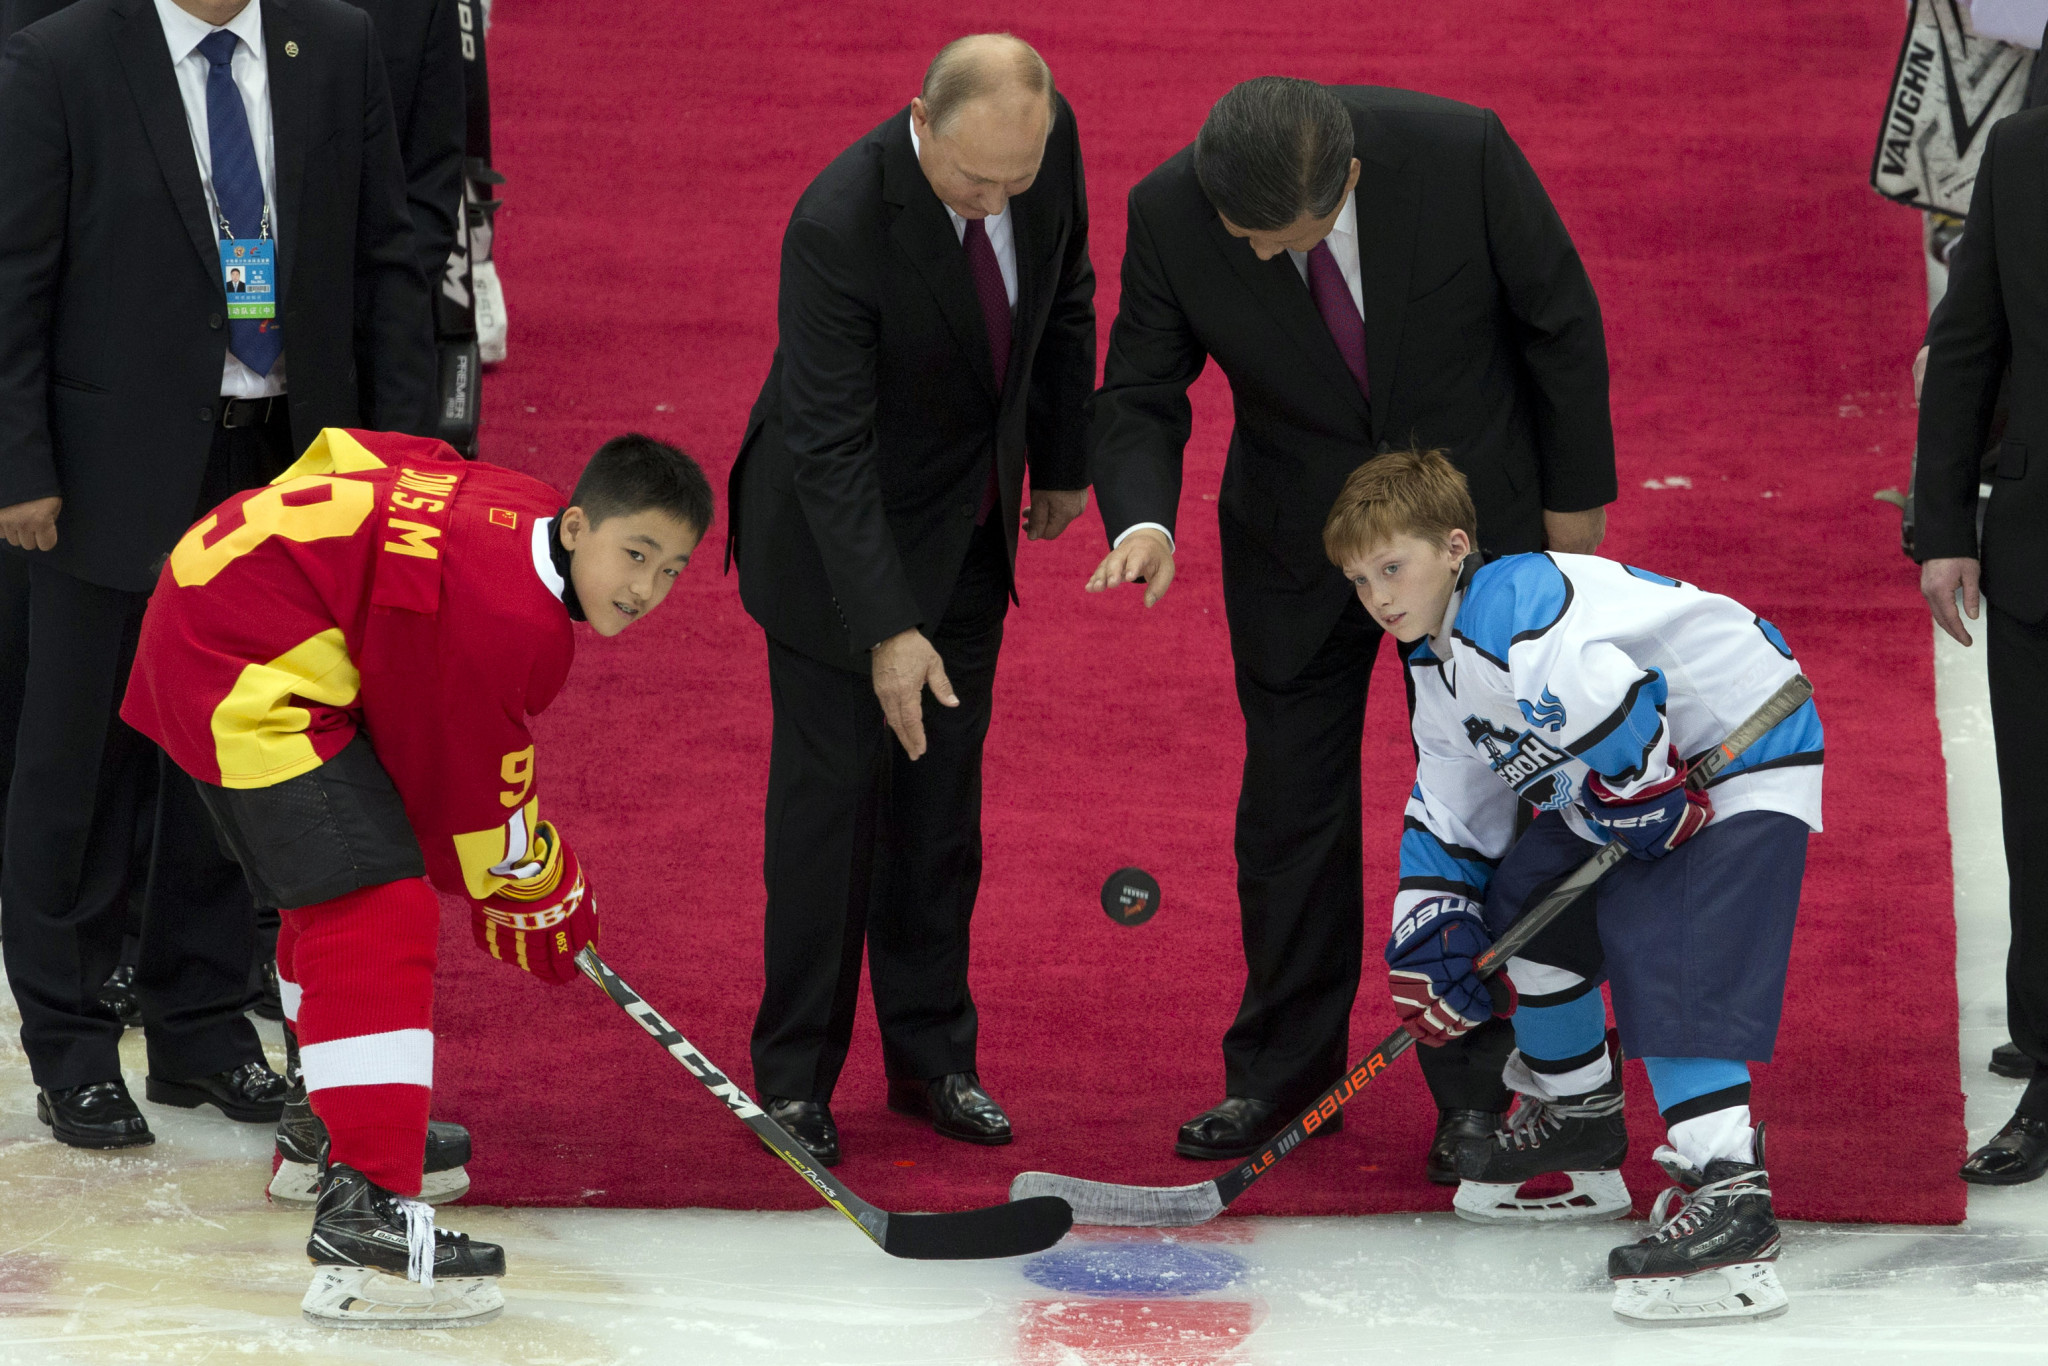 China are aiming to raise the popularity of ice hockey in the country ahead of the 2022 Winter Olympics in Beijing ©Getty Images